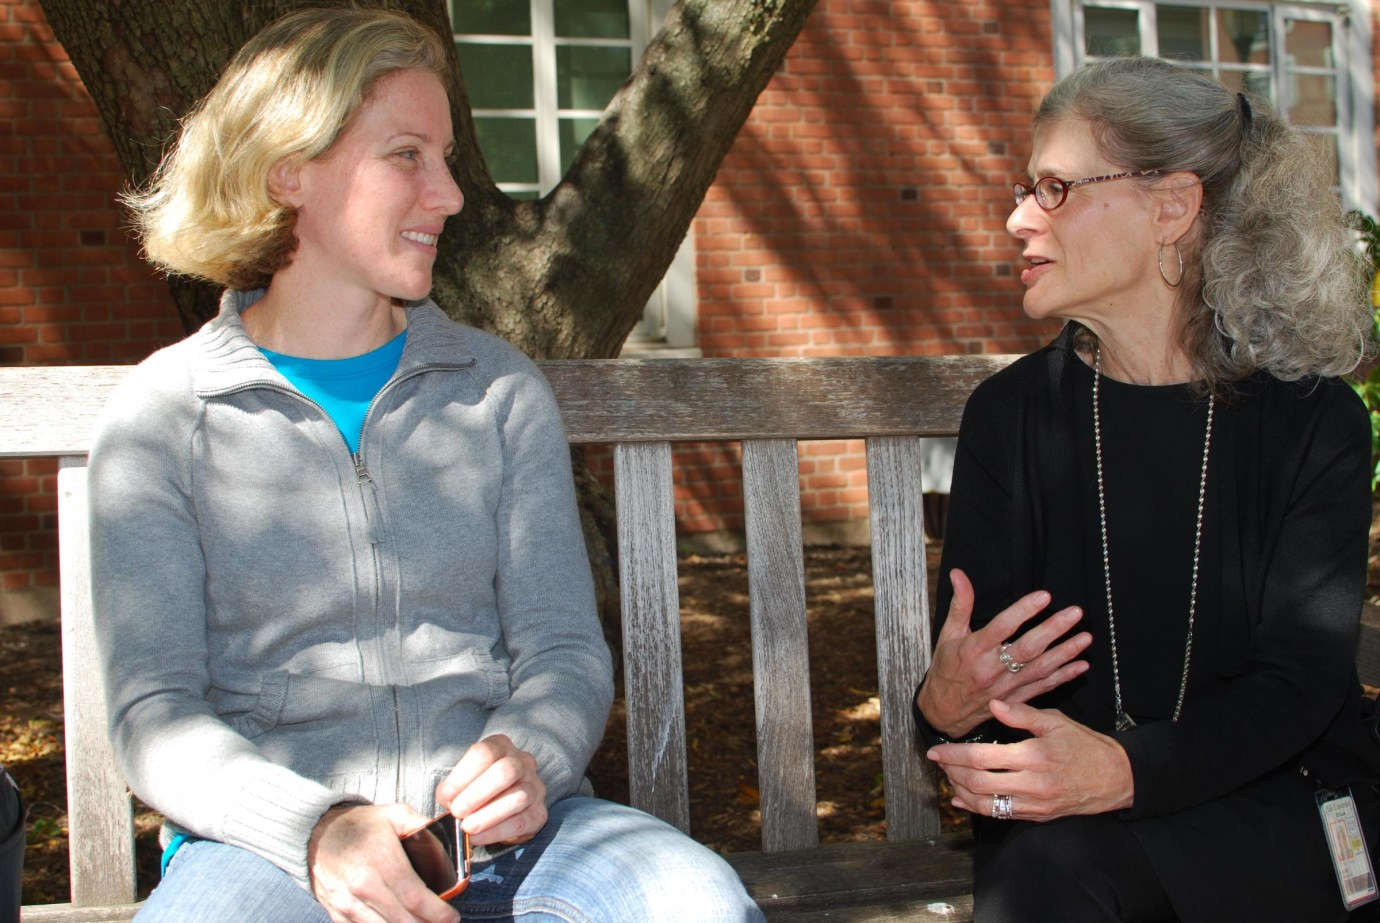 Associate Dean of Student Affairs talking with a student